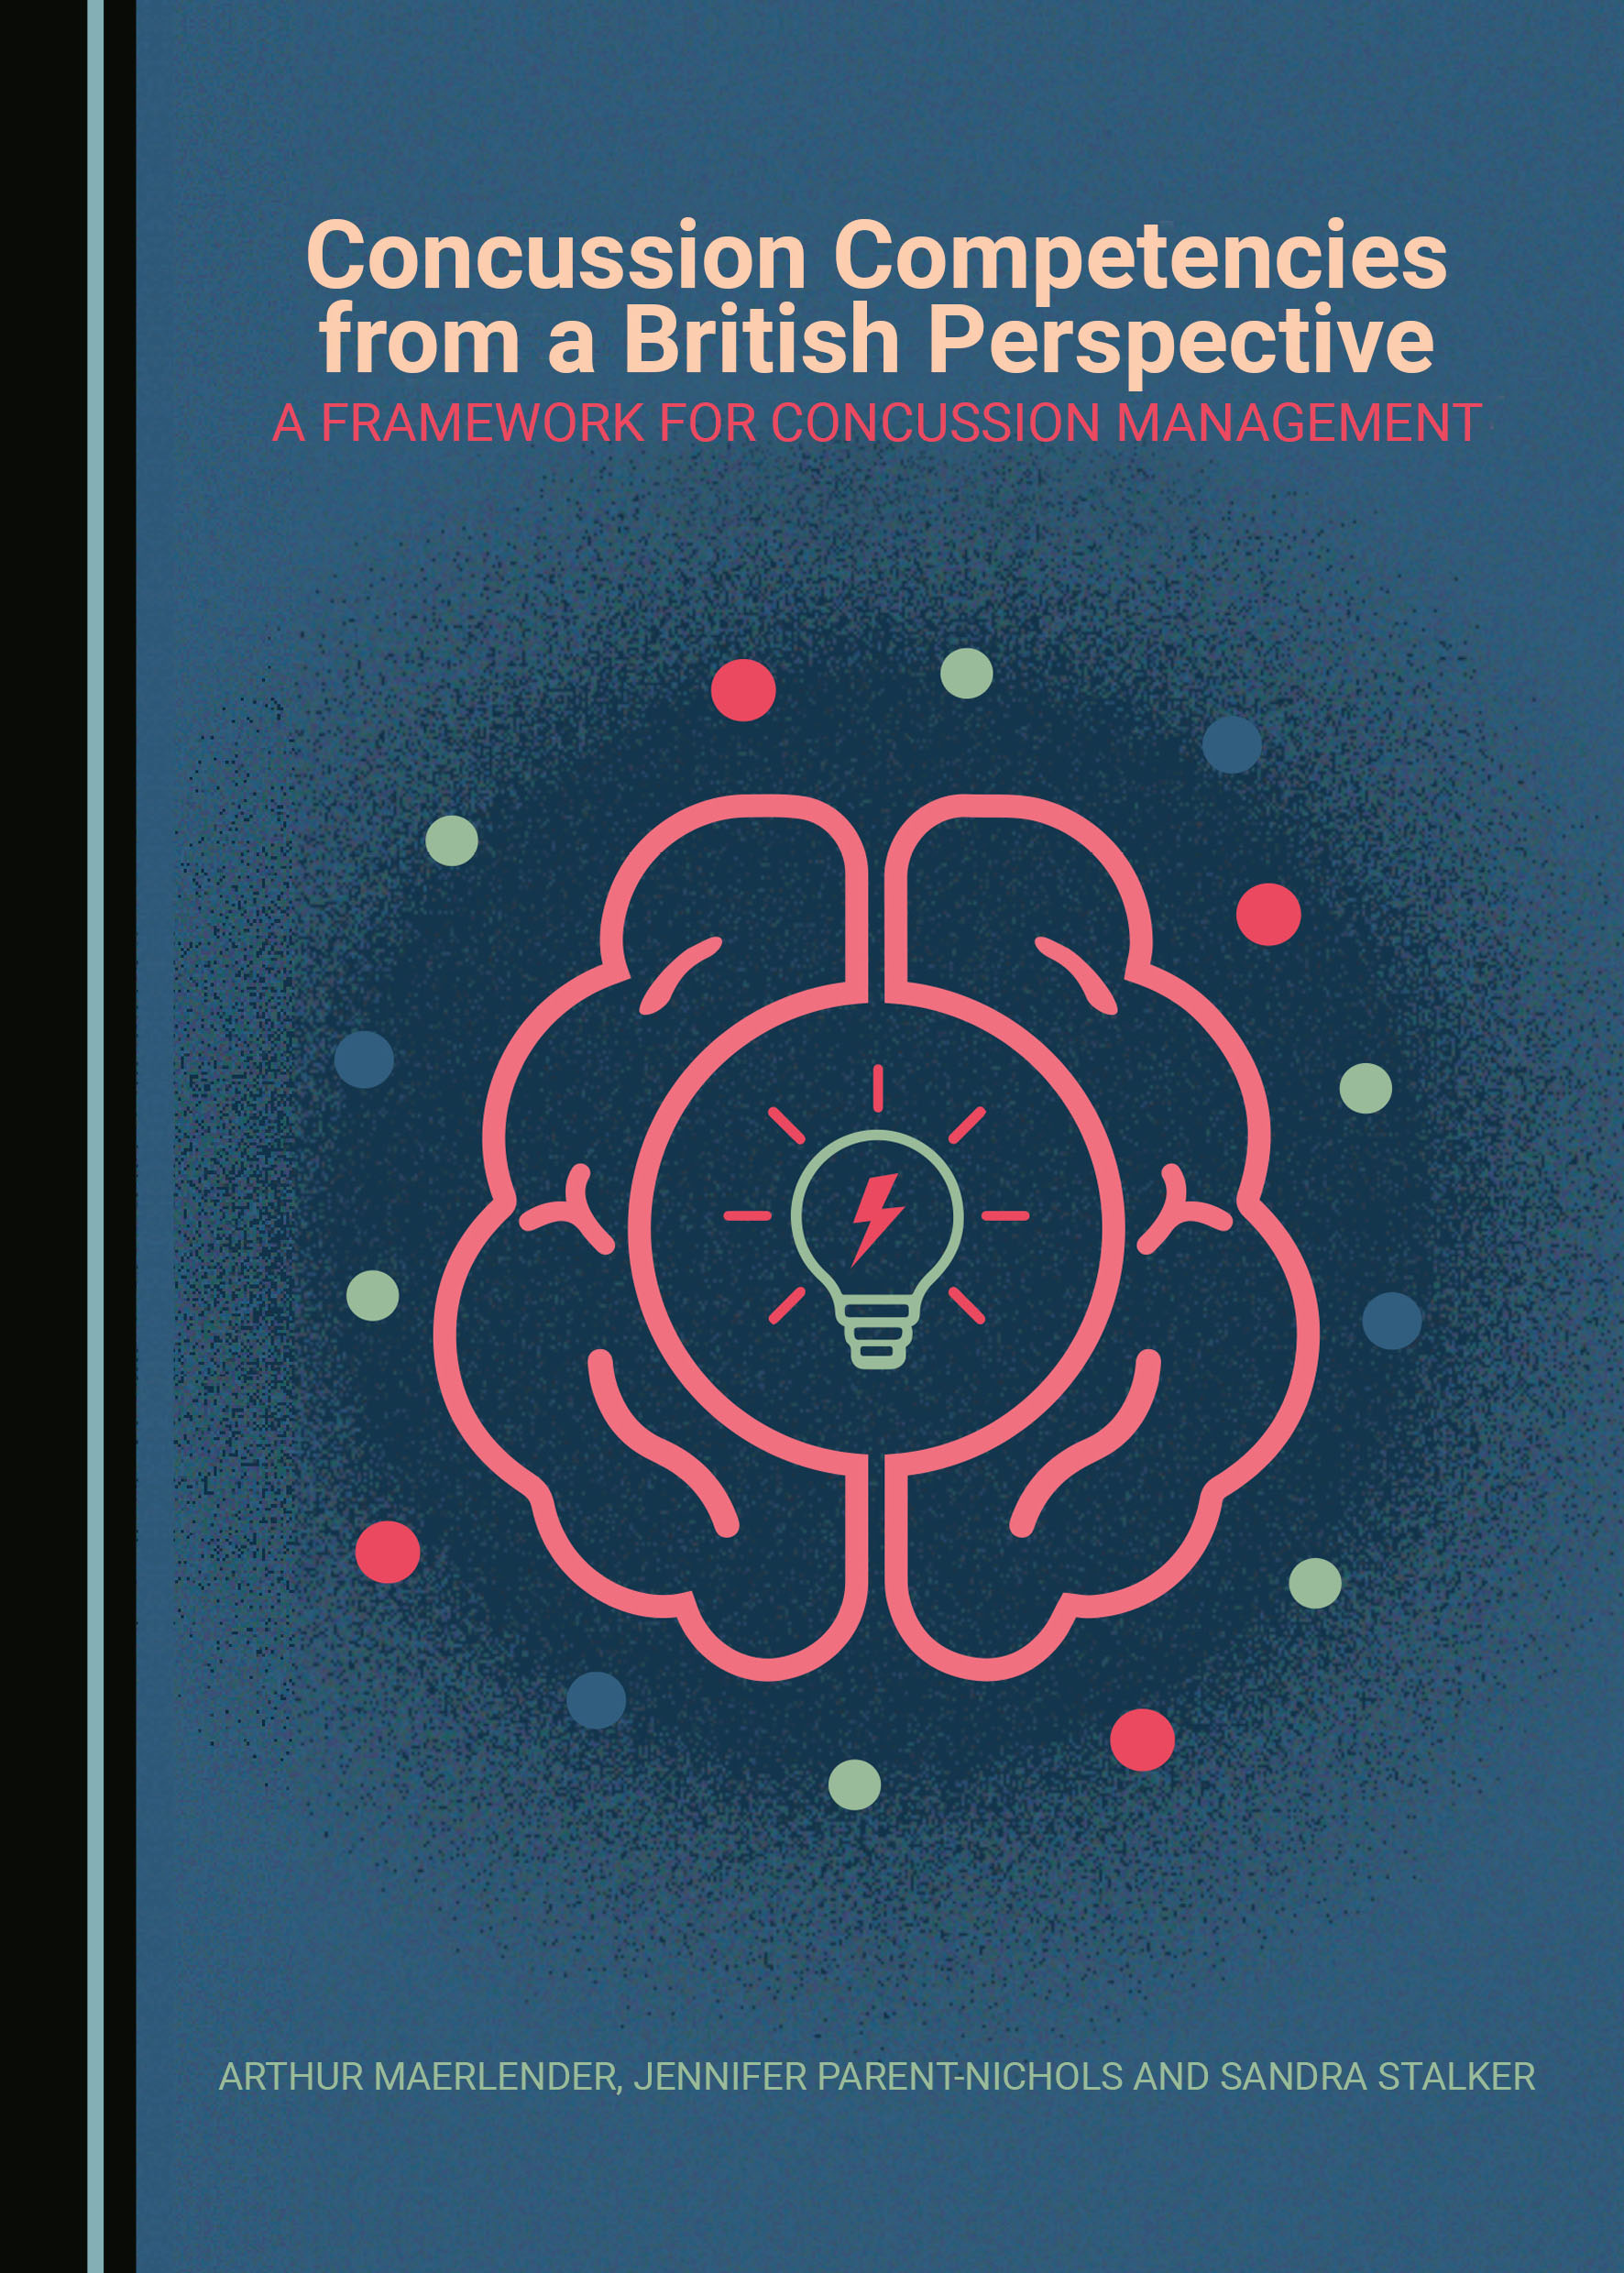 Concussion Competencies from a British Perspective: A Framework for Concussion Management